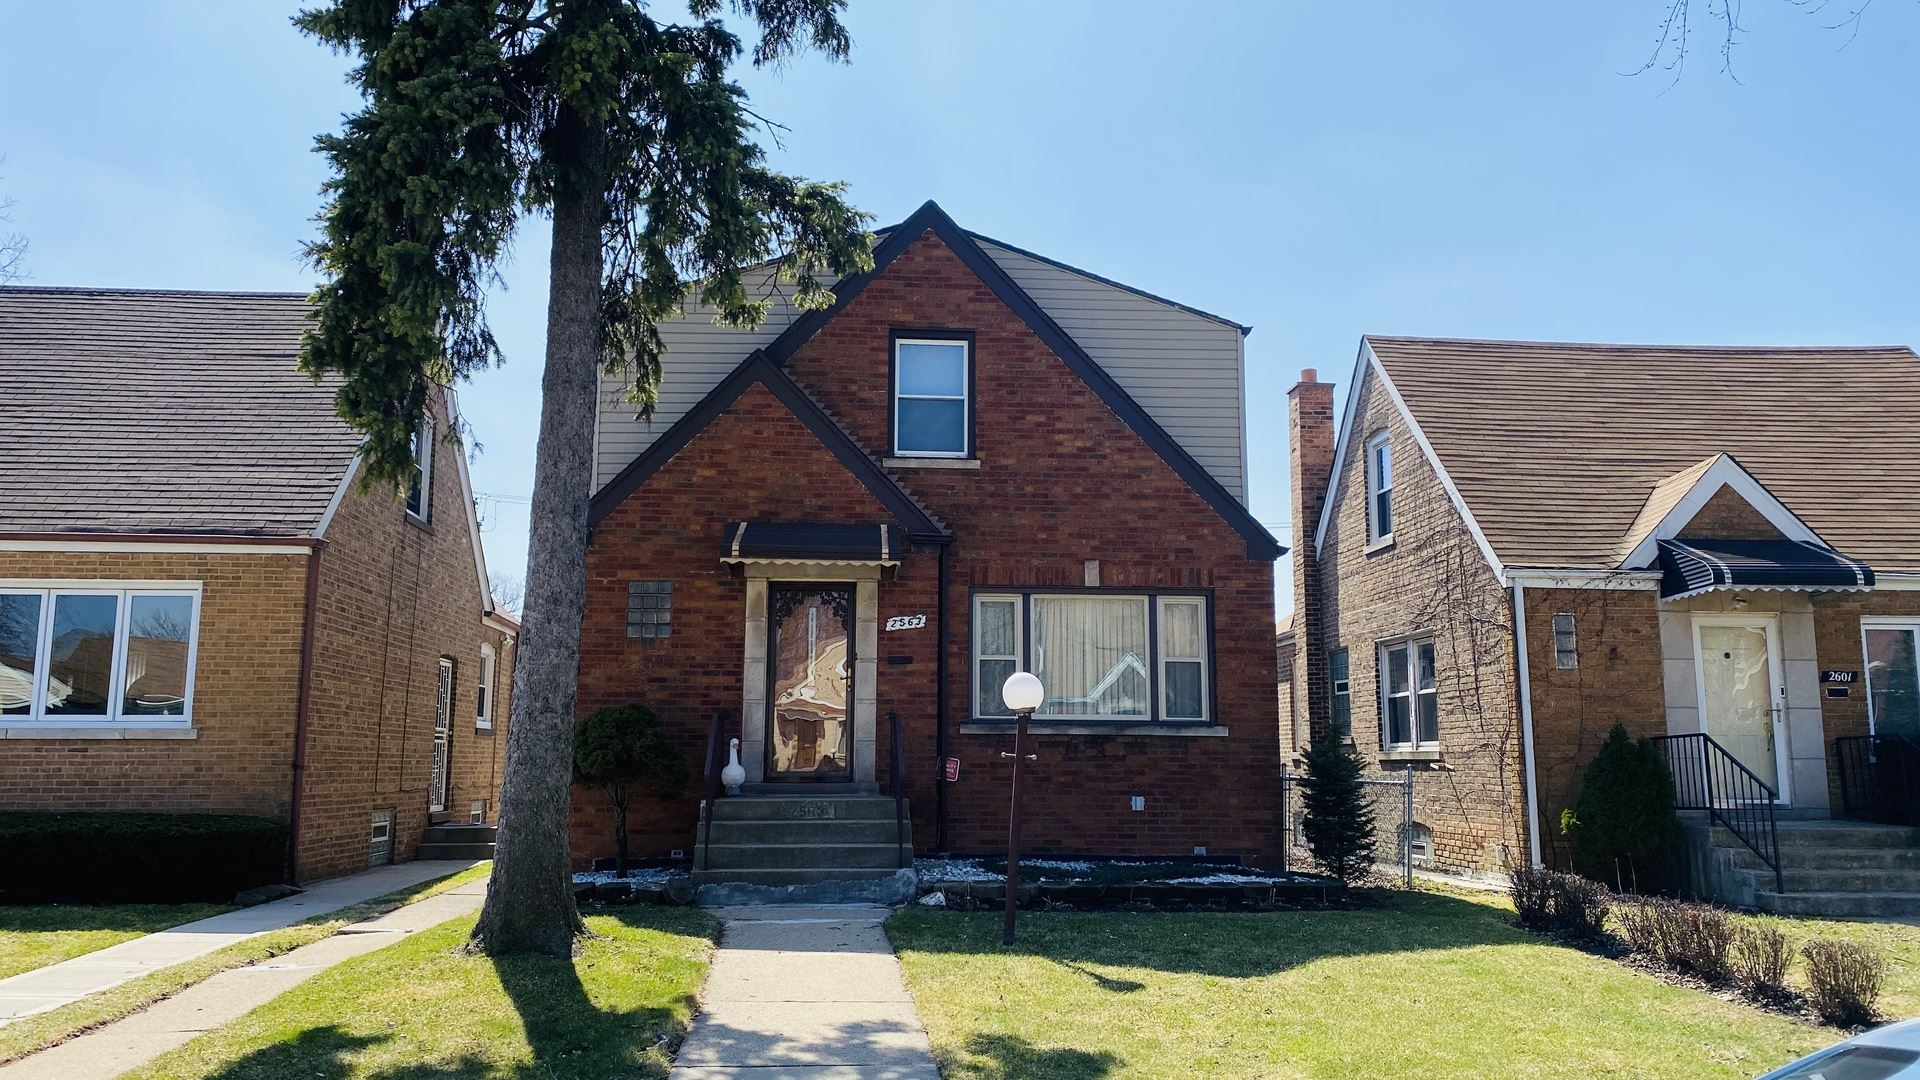 2563 W 82nd Place, Chicago, IL 60652 - #: 10680146